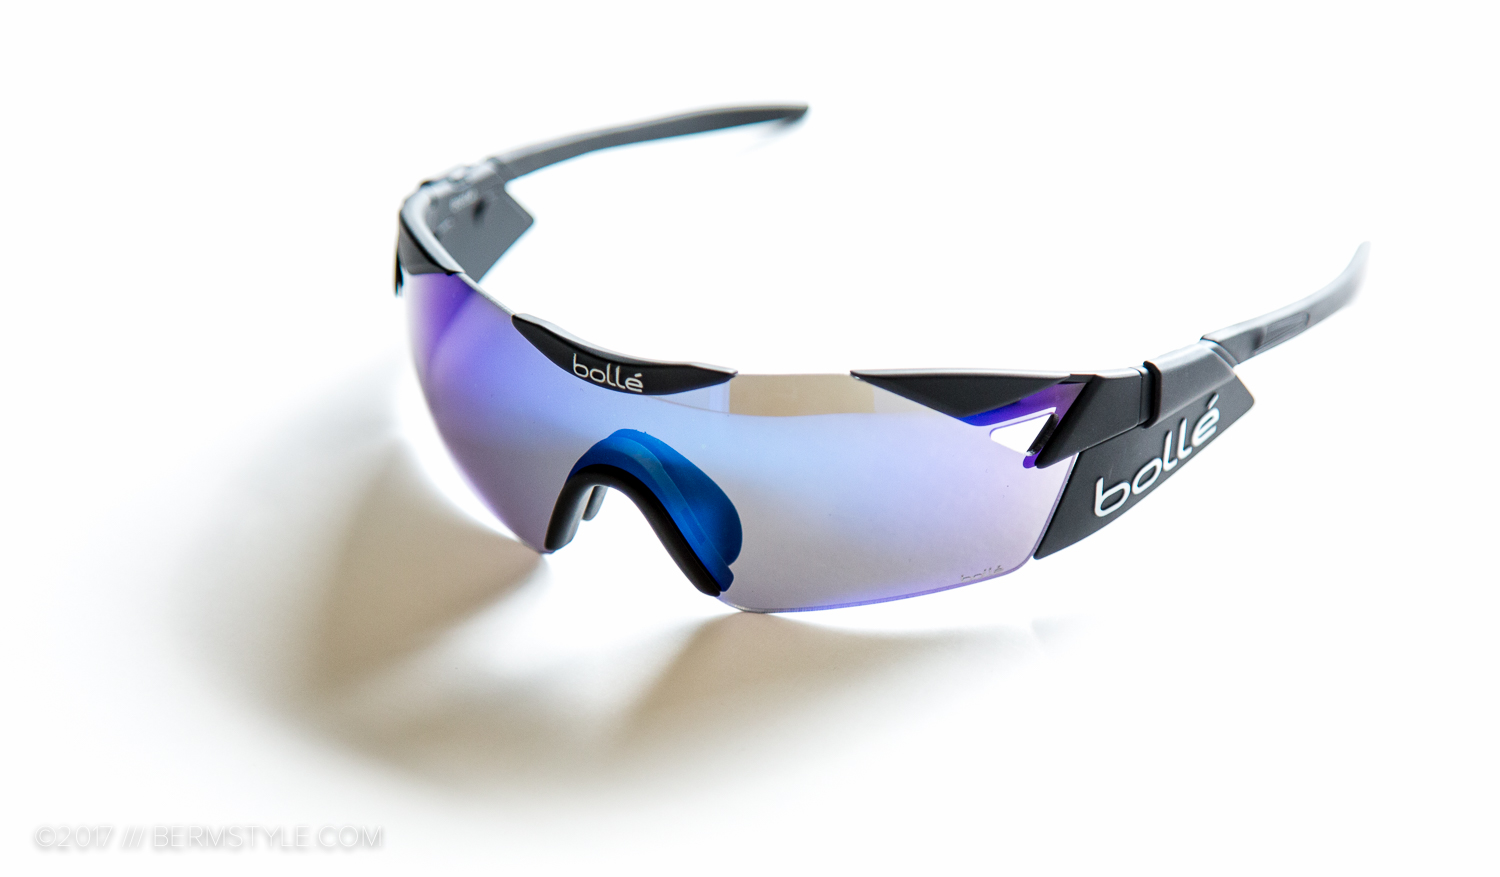 2daf2263f4d Bolle 6th Sense Photochromic Cycling Sunglasses